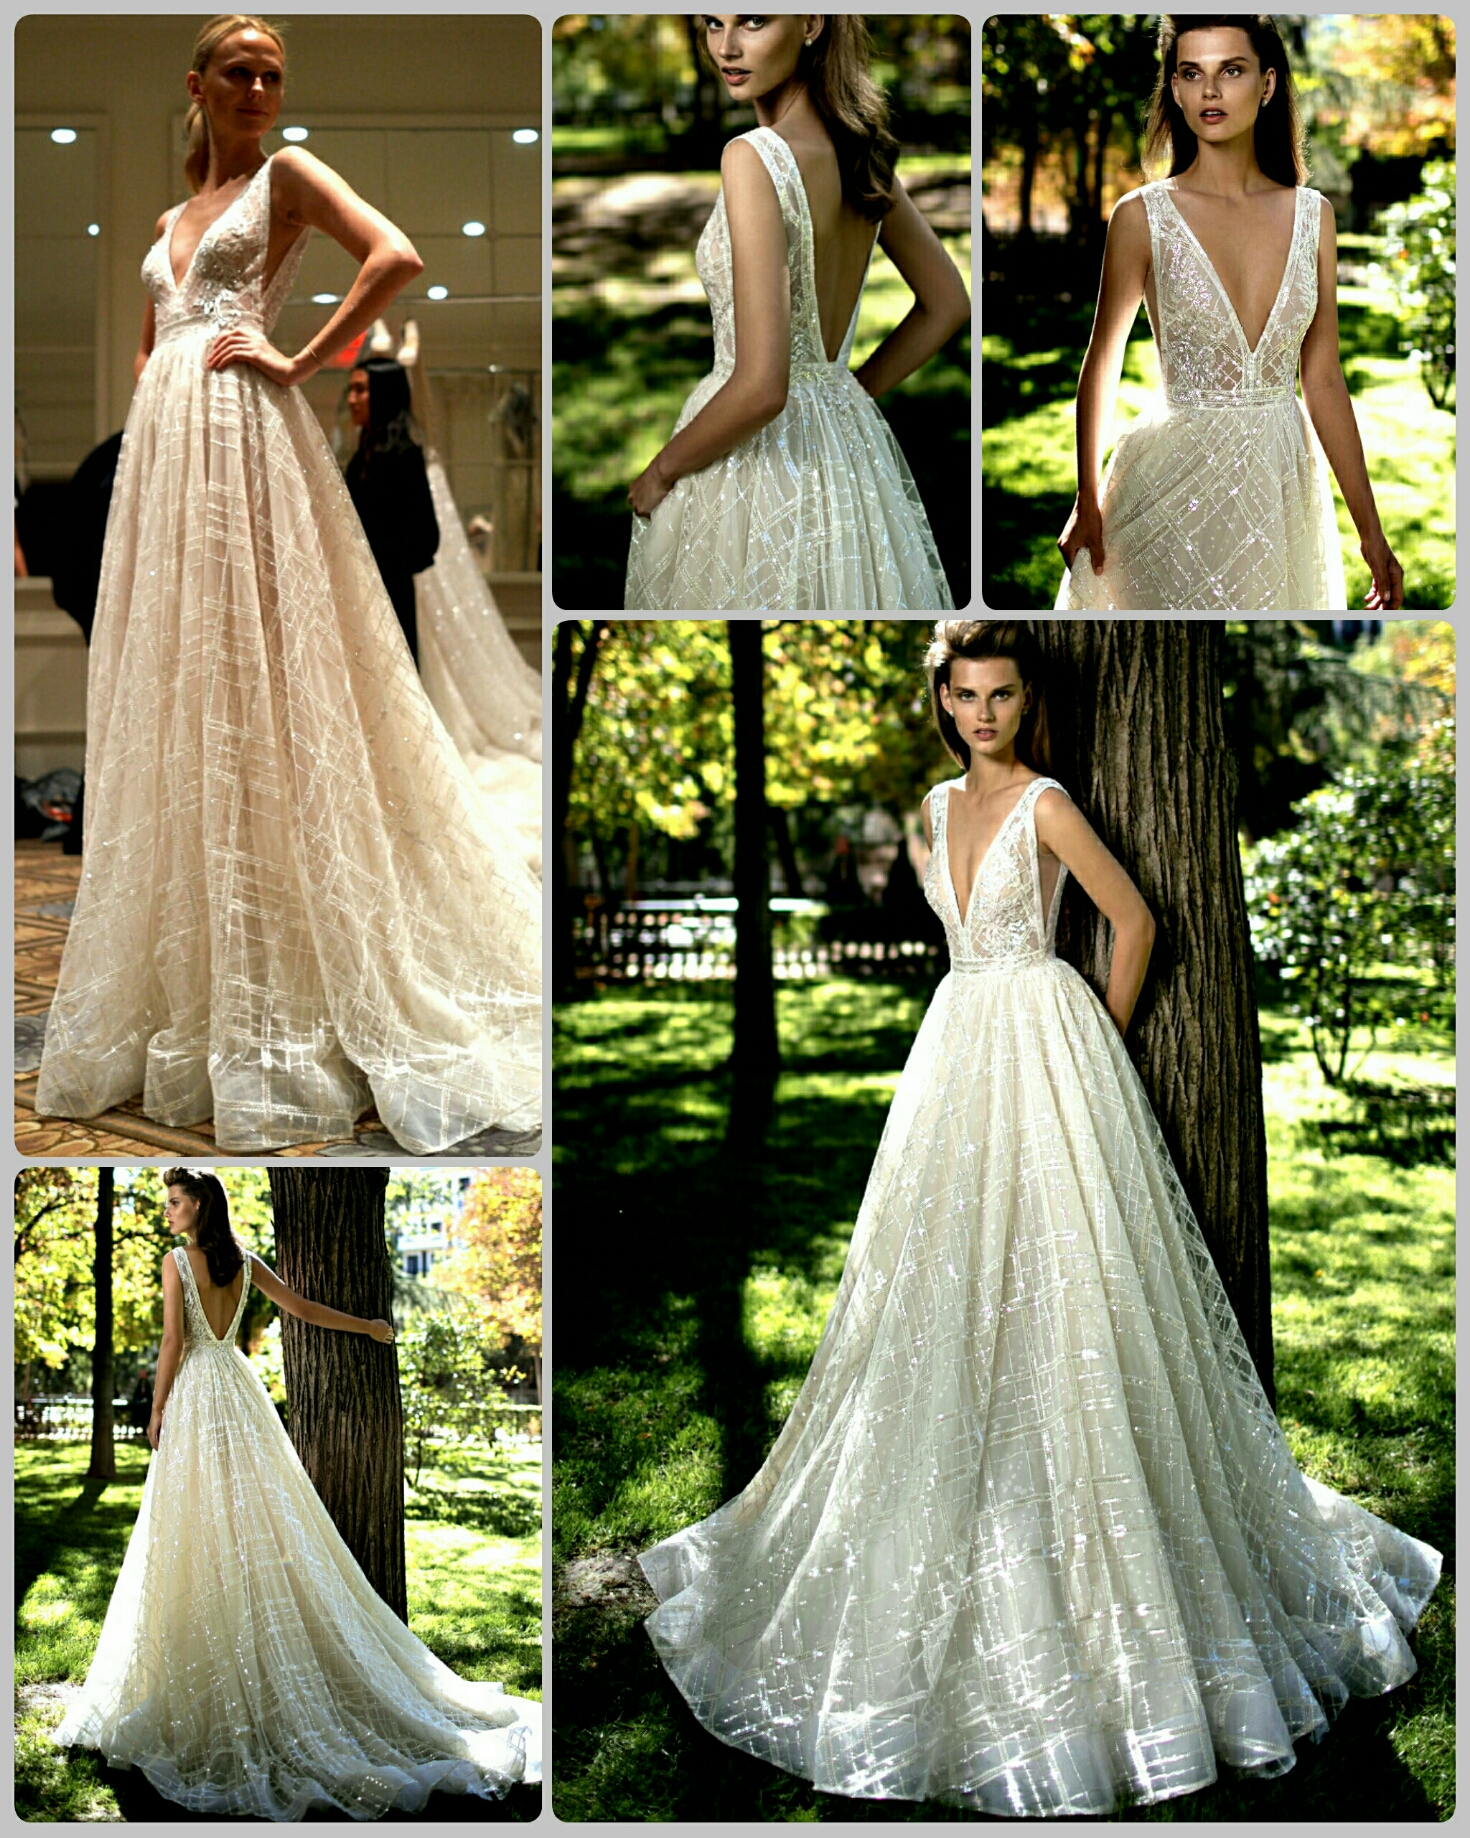 My Top 20 All Time Favorite Wedding Gowns